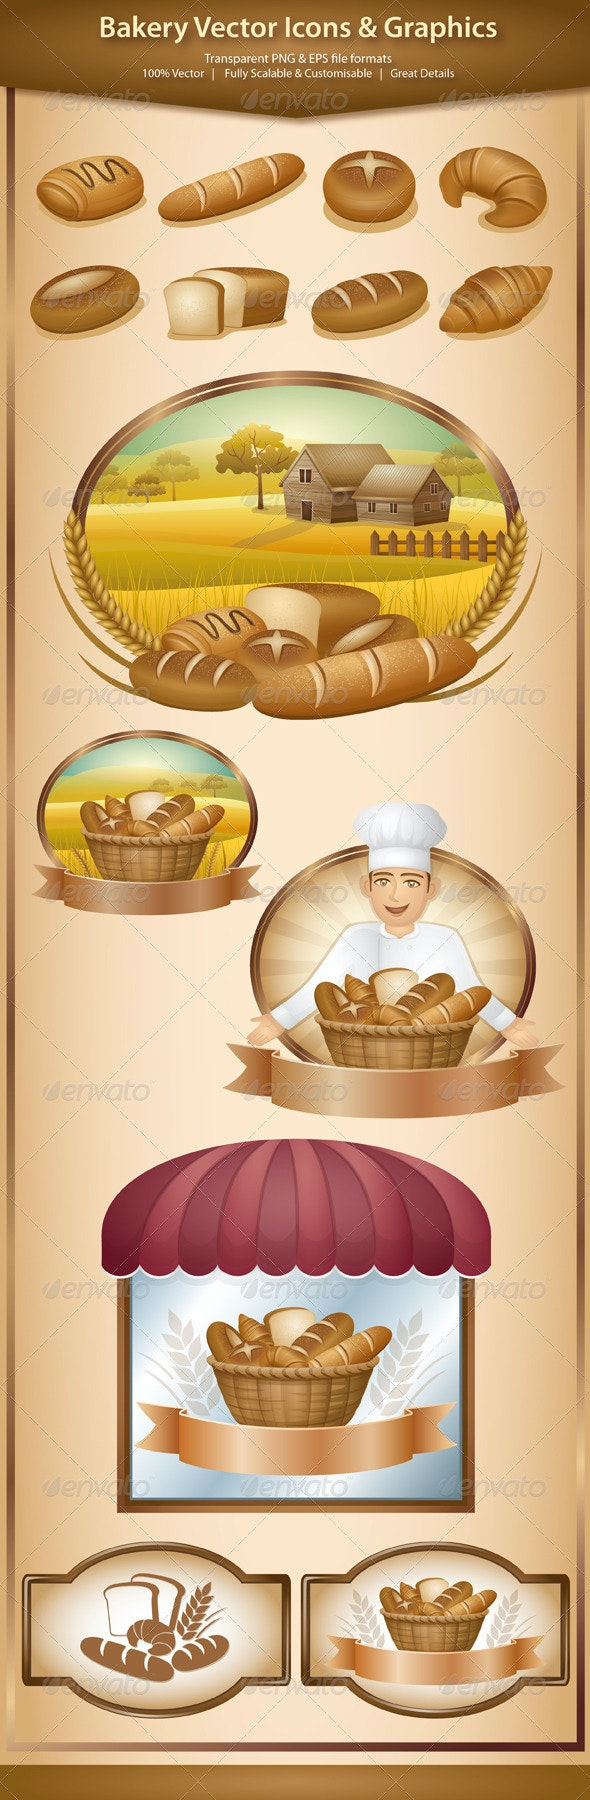 Bakery Vector Icons And Graphics - Food Objects